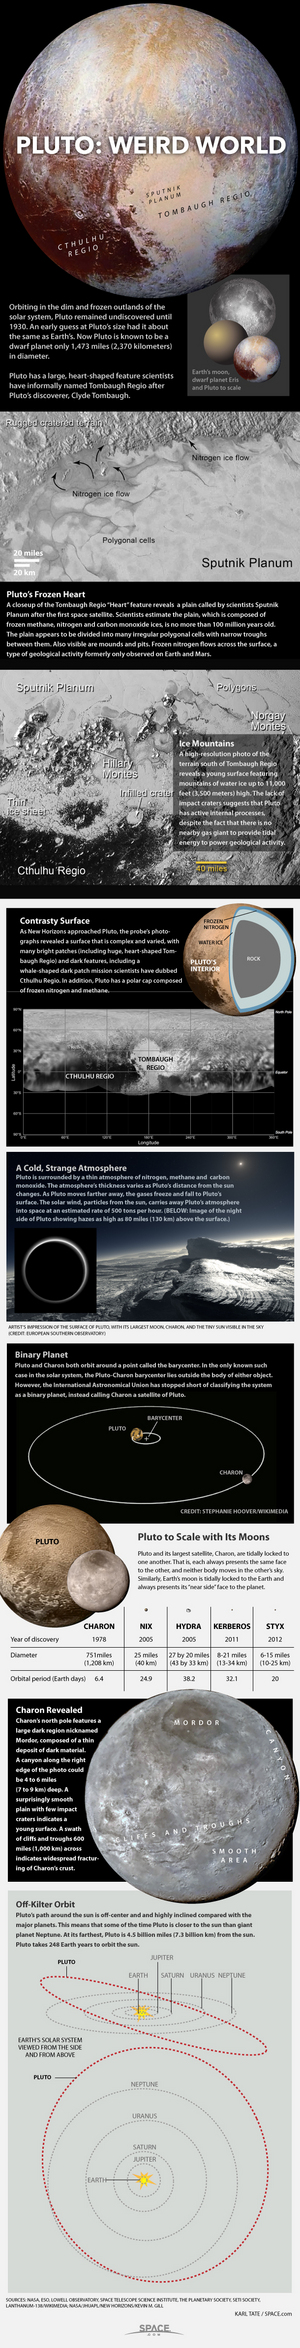 "Pluto and its moons orbit the sun near the edge of our solar system. <a href=""http://www.space.com/12370-pluto-dwarf-planet-oddity-infographic.html"">Learn all about Pluto's weirdly eccentric orbit, four moons and more in this Space.com infographic</a>."